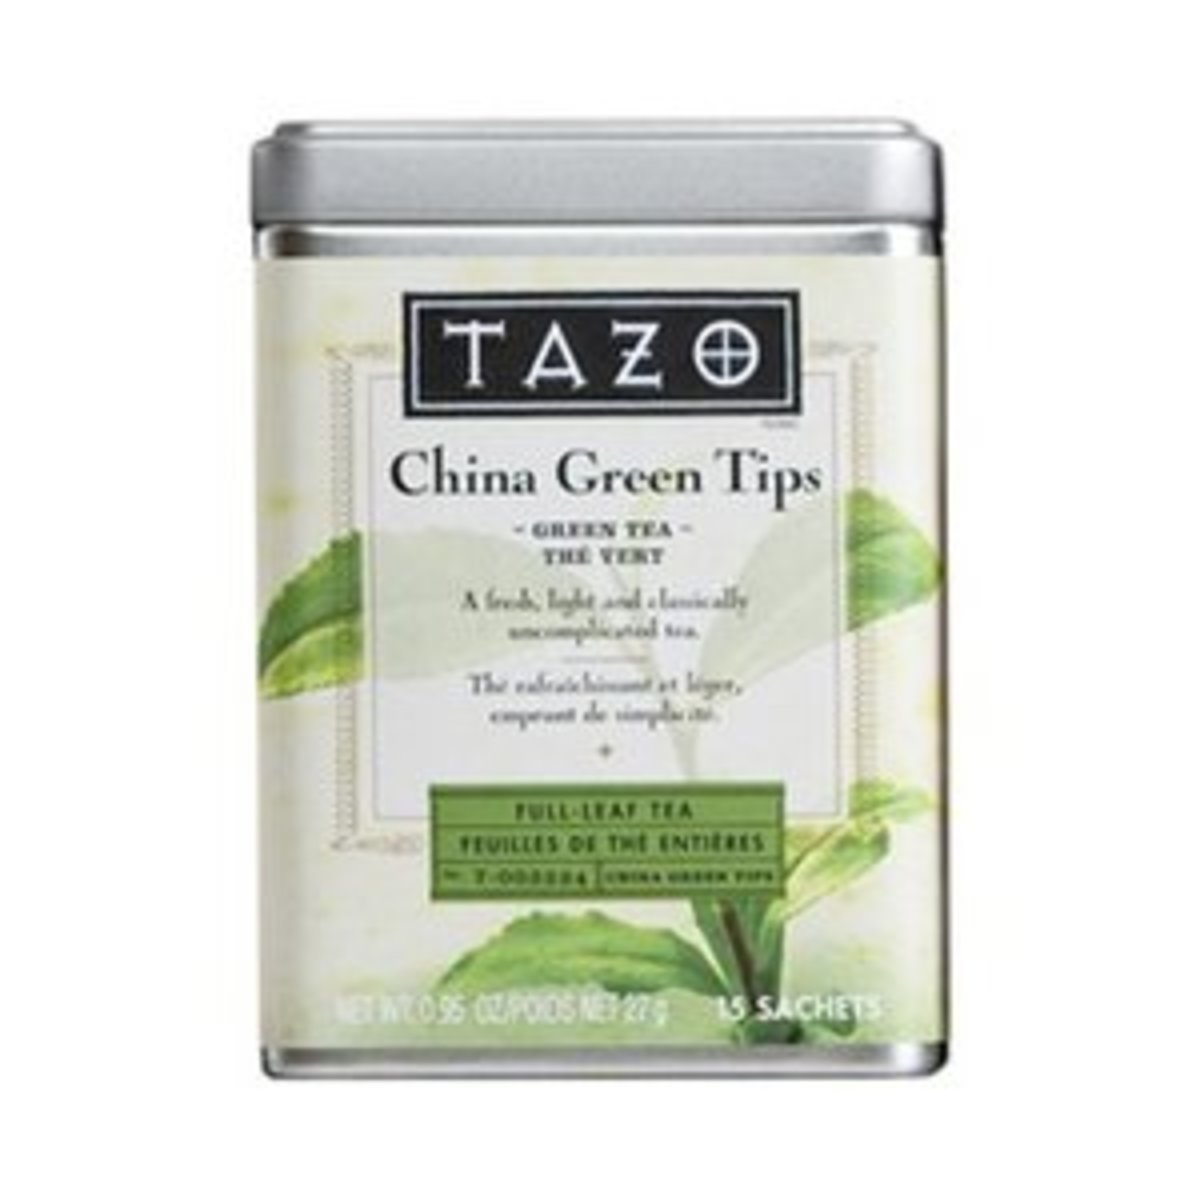 The classic green tea, China Green Tips.